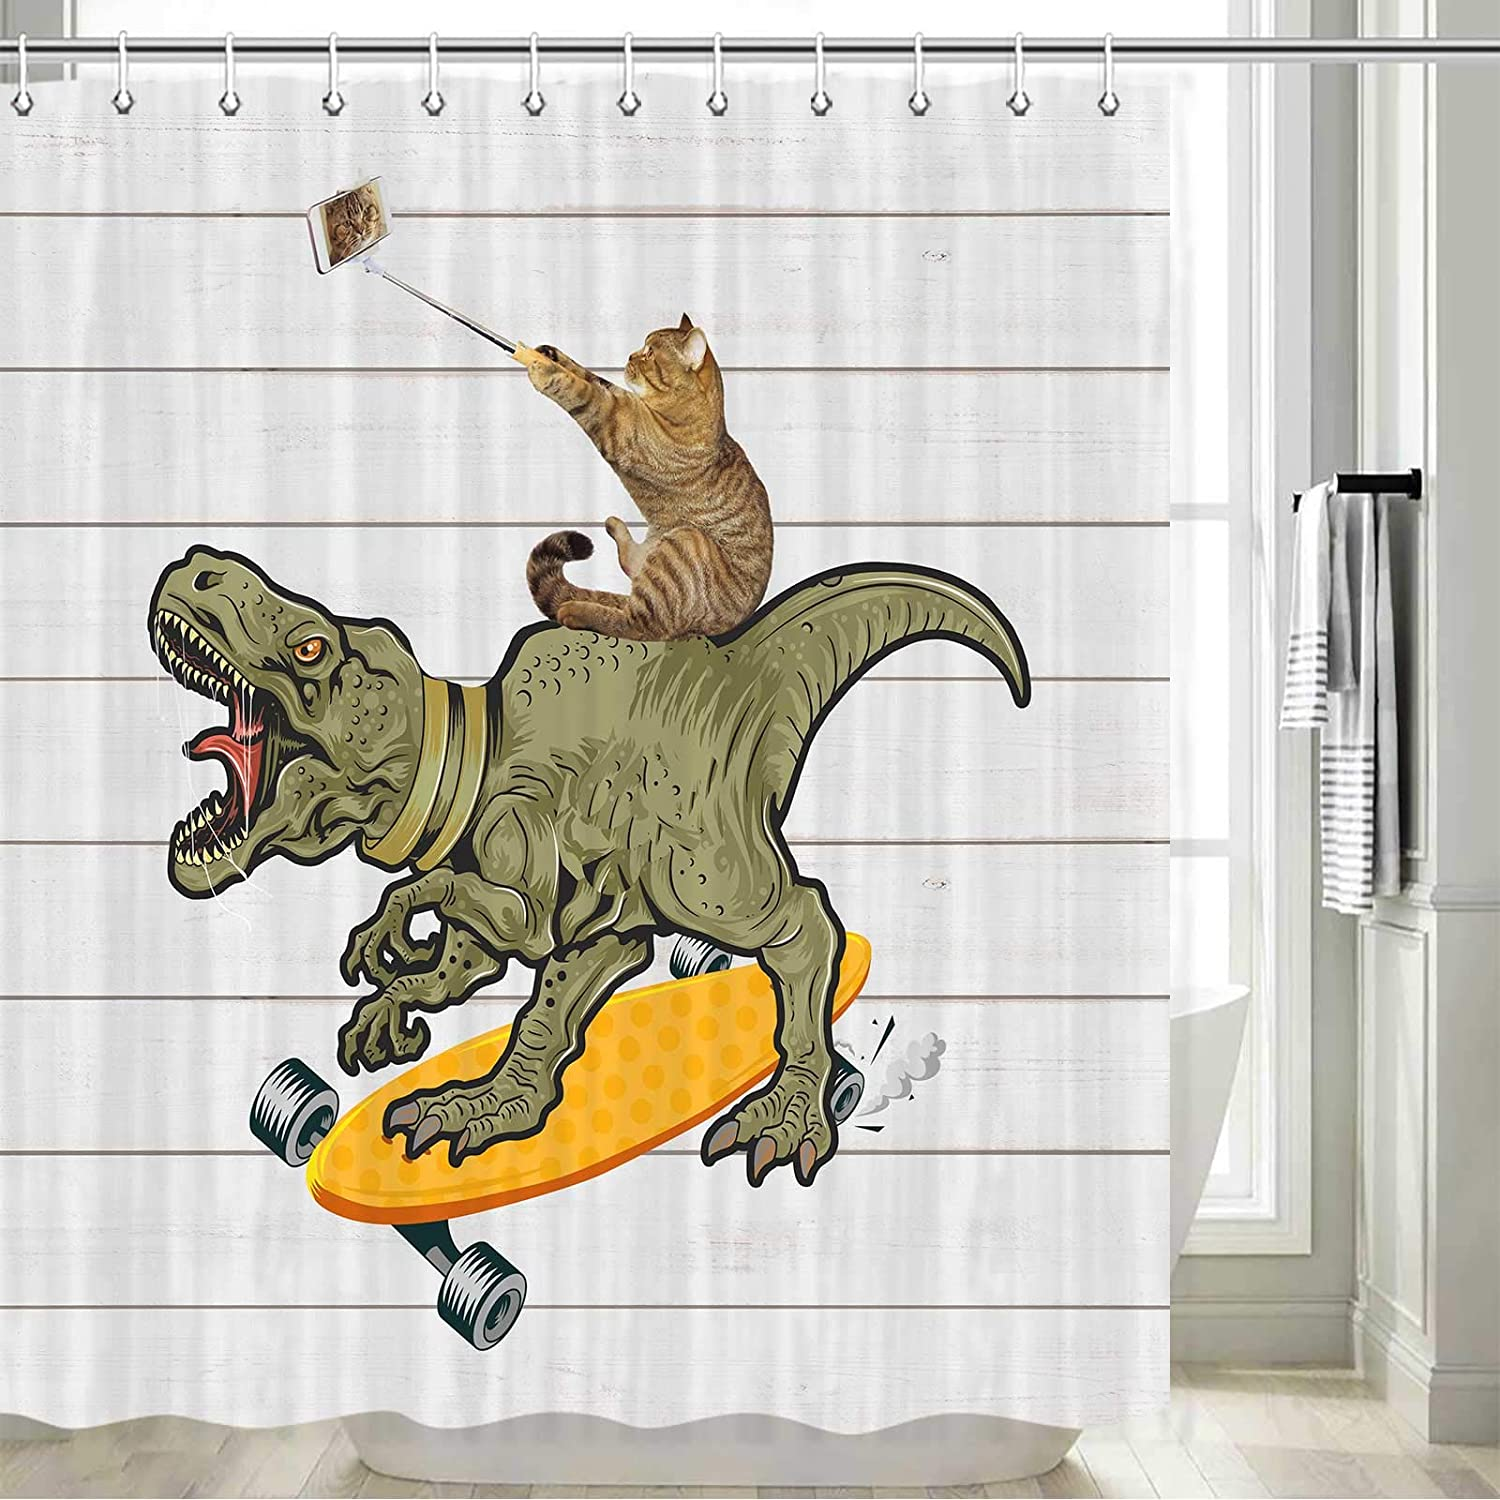 DYNH Funny Shower Curtain, Funny Cartoon Cat Riding Dinosaurs for Children Kids Fabric Cat Shower Curtain, Funny Cat Fun Shower Curtain Sets, Hooks Included, 70 in